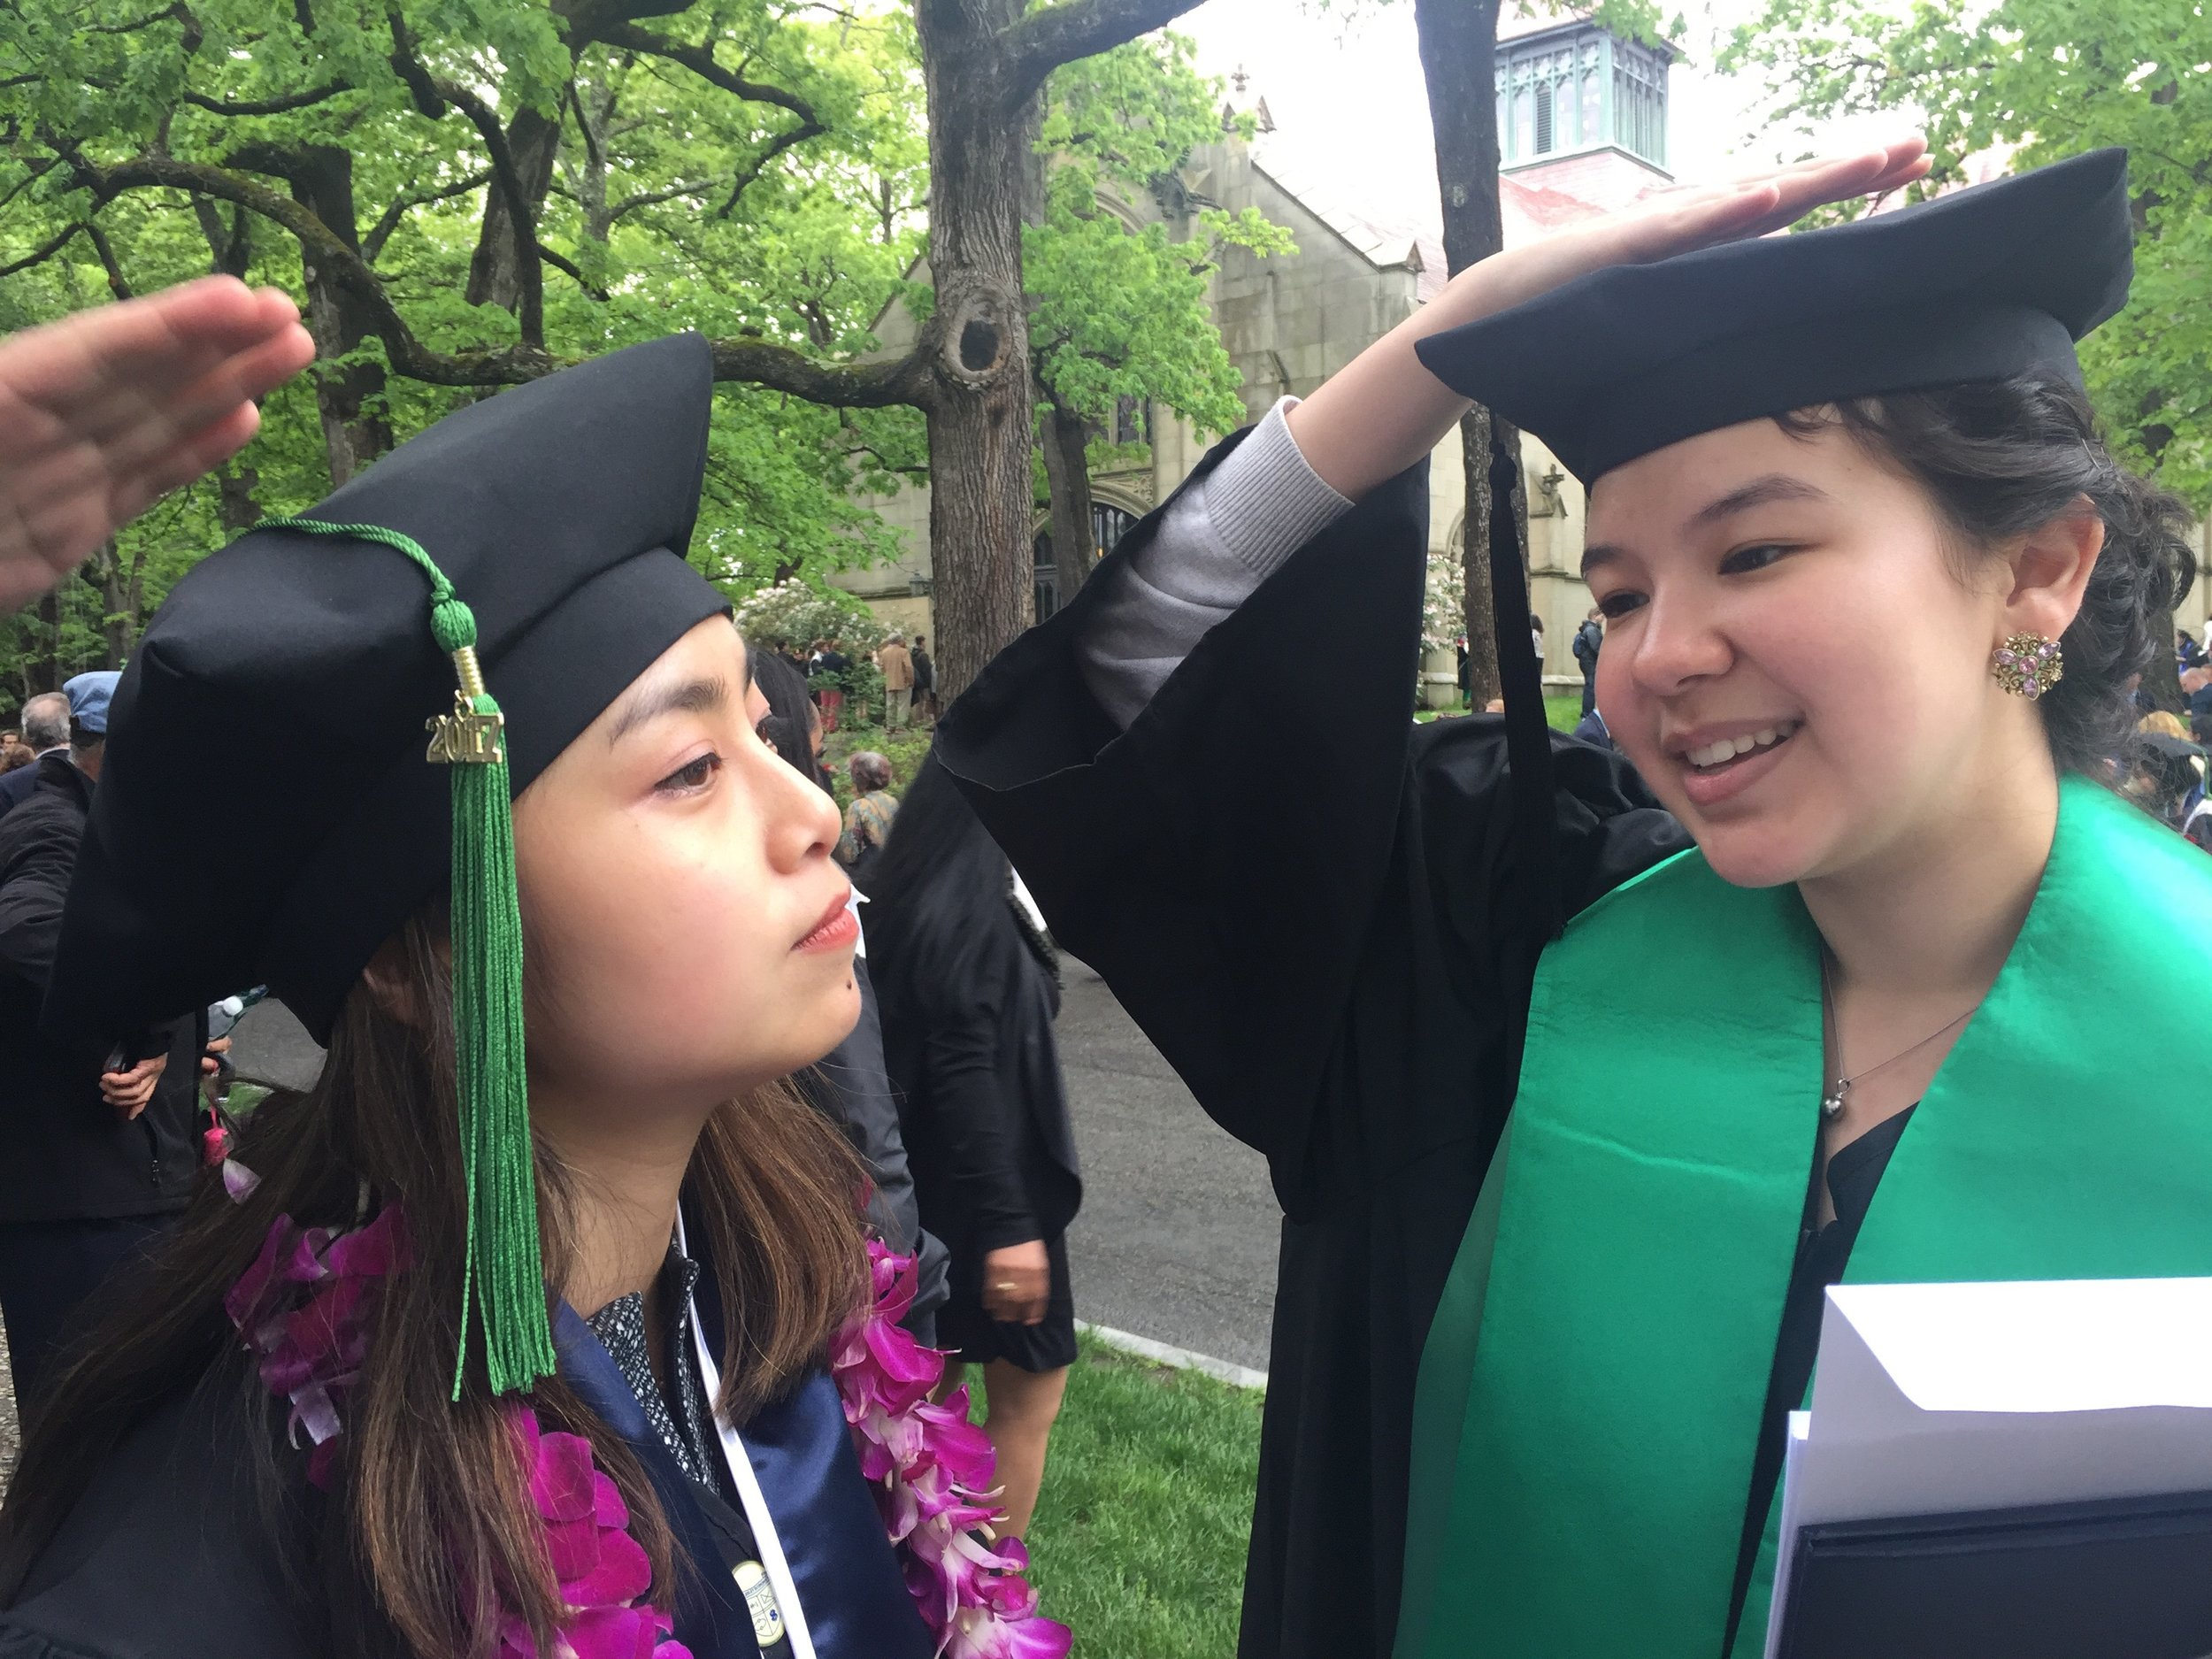 Willow and I debating the proper way to wear the tam, aka the funny graduation hats